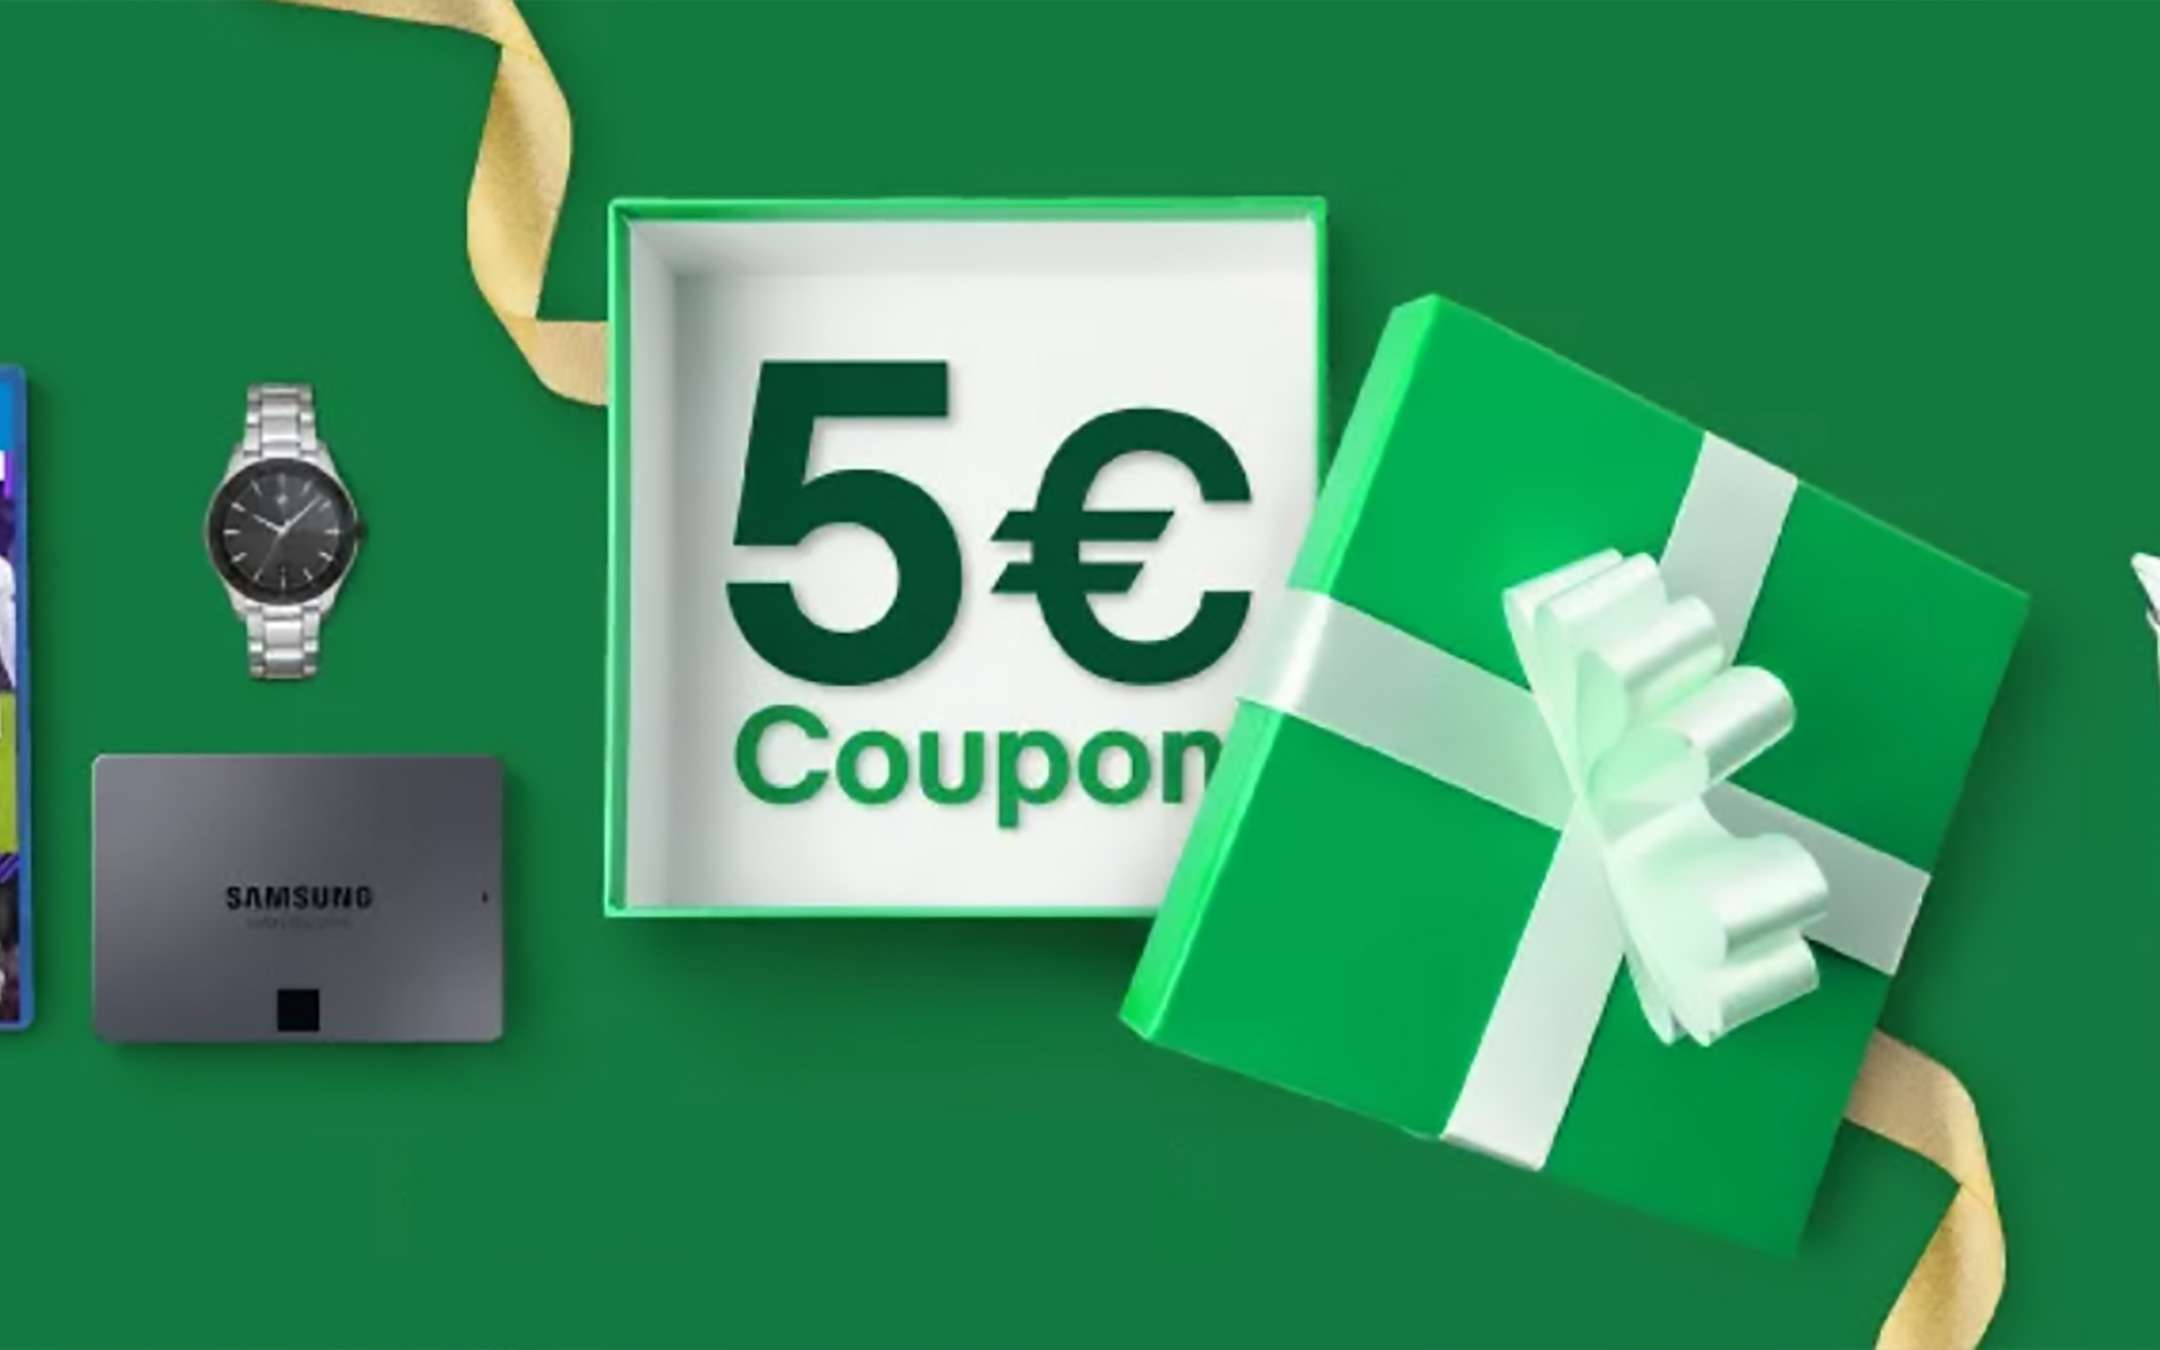 5 euro discount on eBay with this coupon